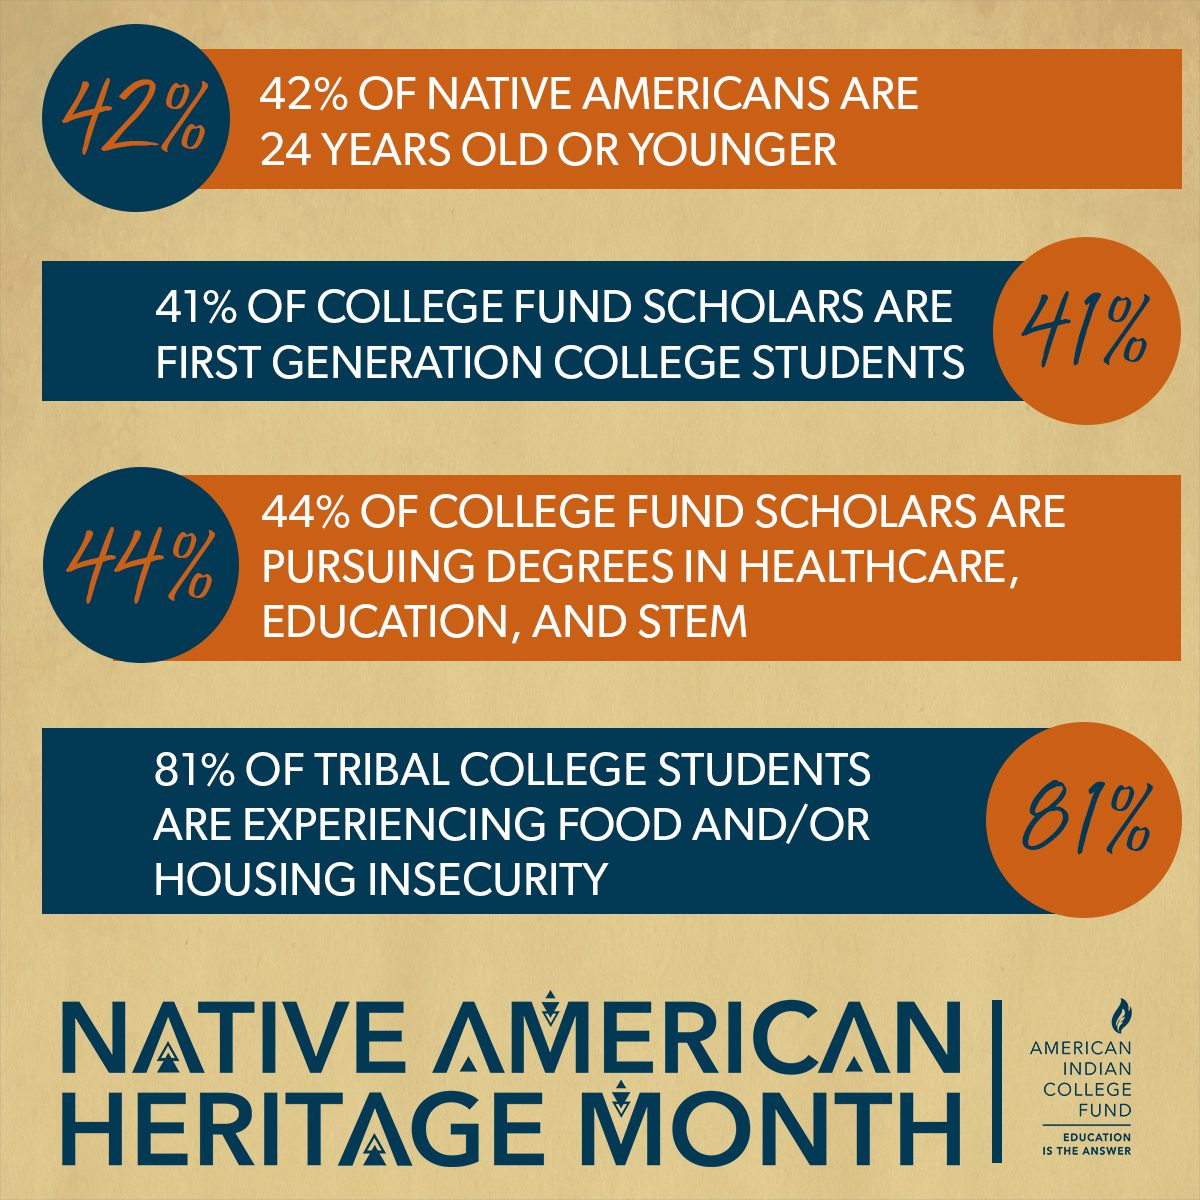 Native American Heritage Month - Share on Instagram 5